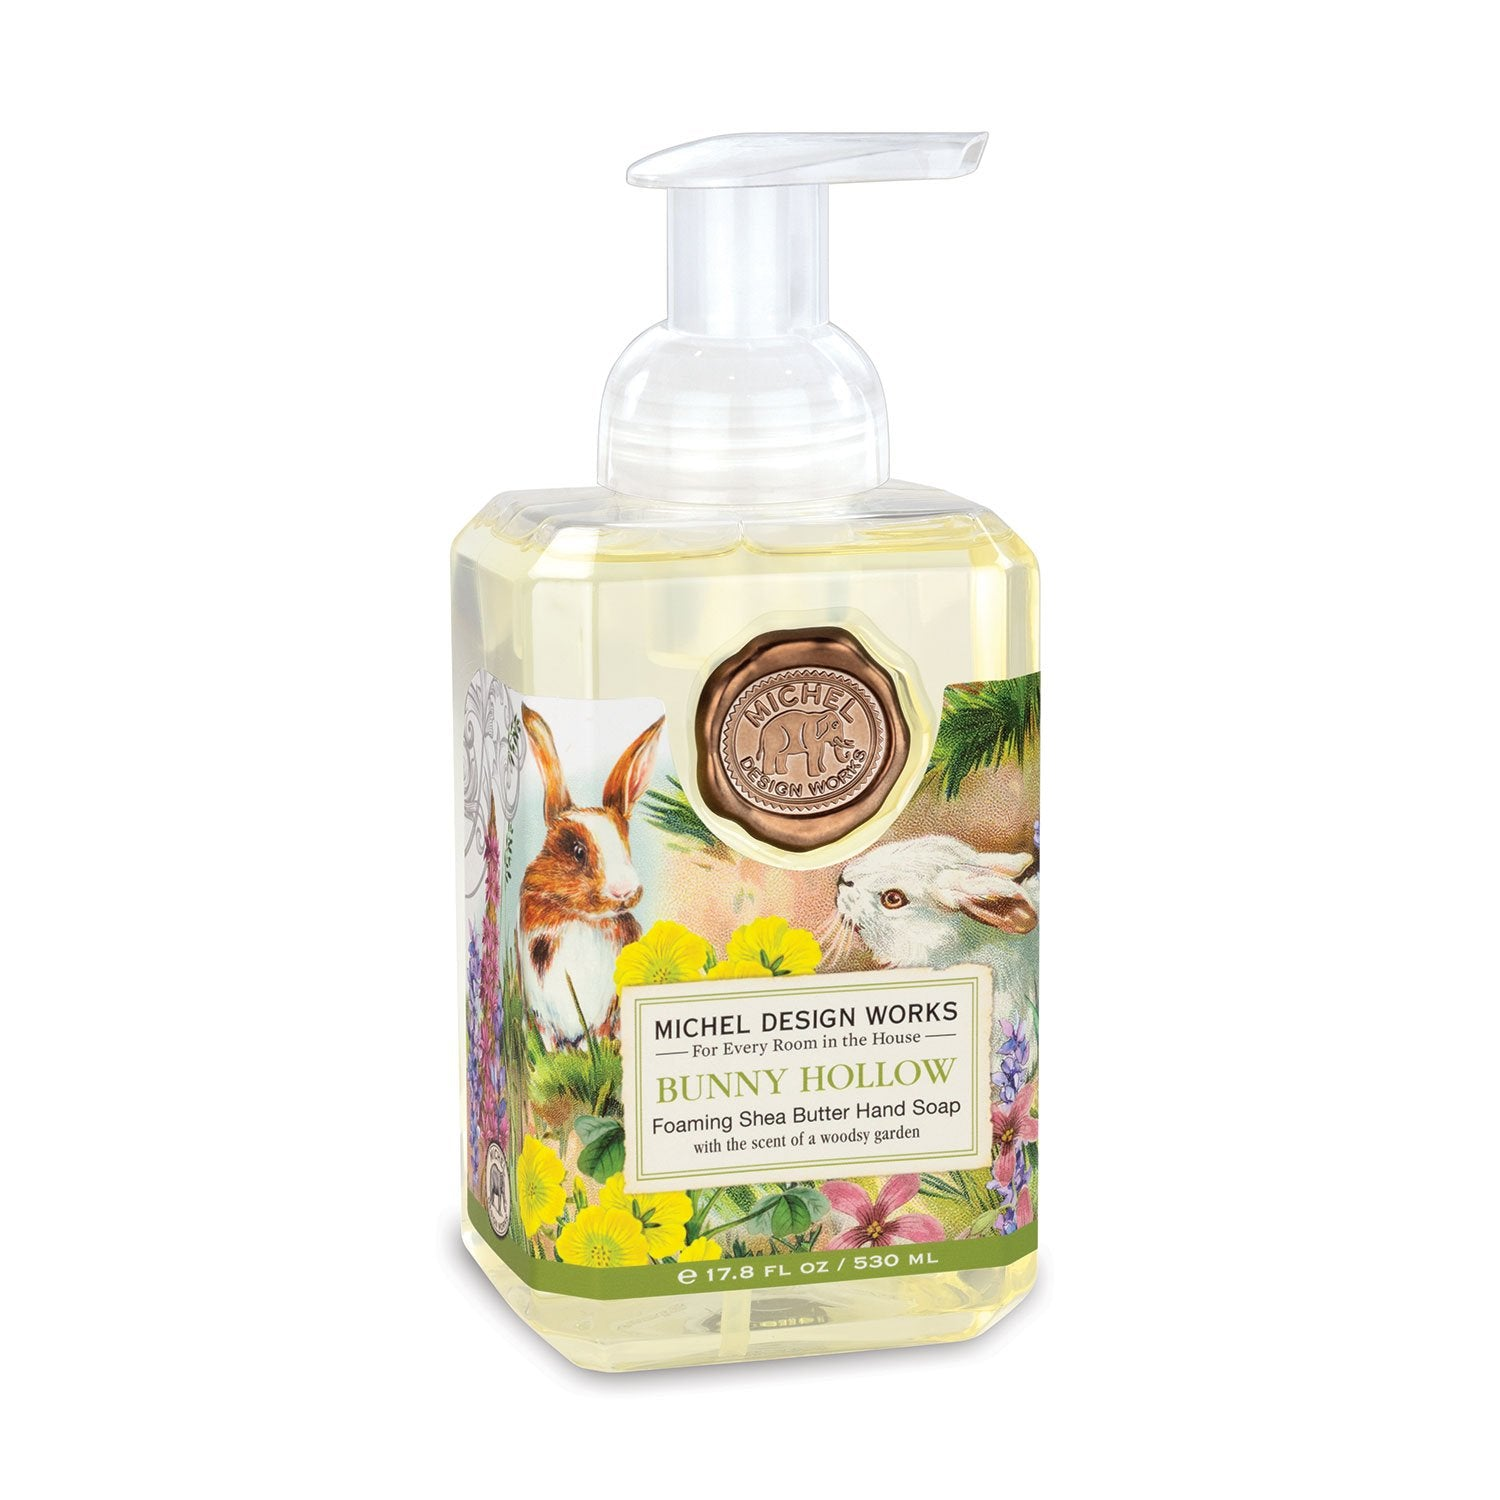 Bunny Hollow Foaming Hand Soap